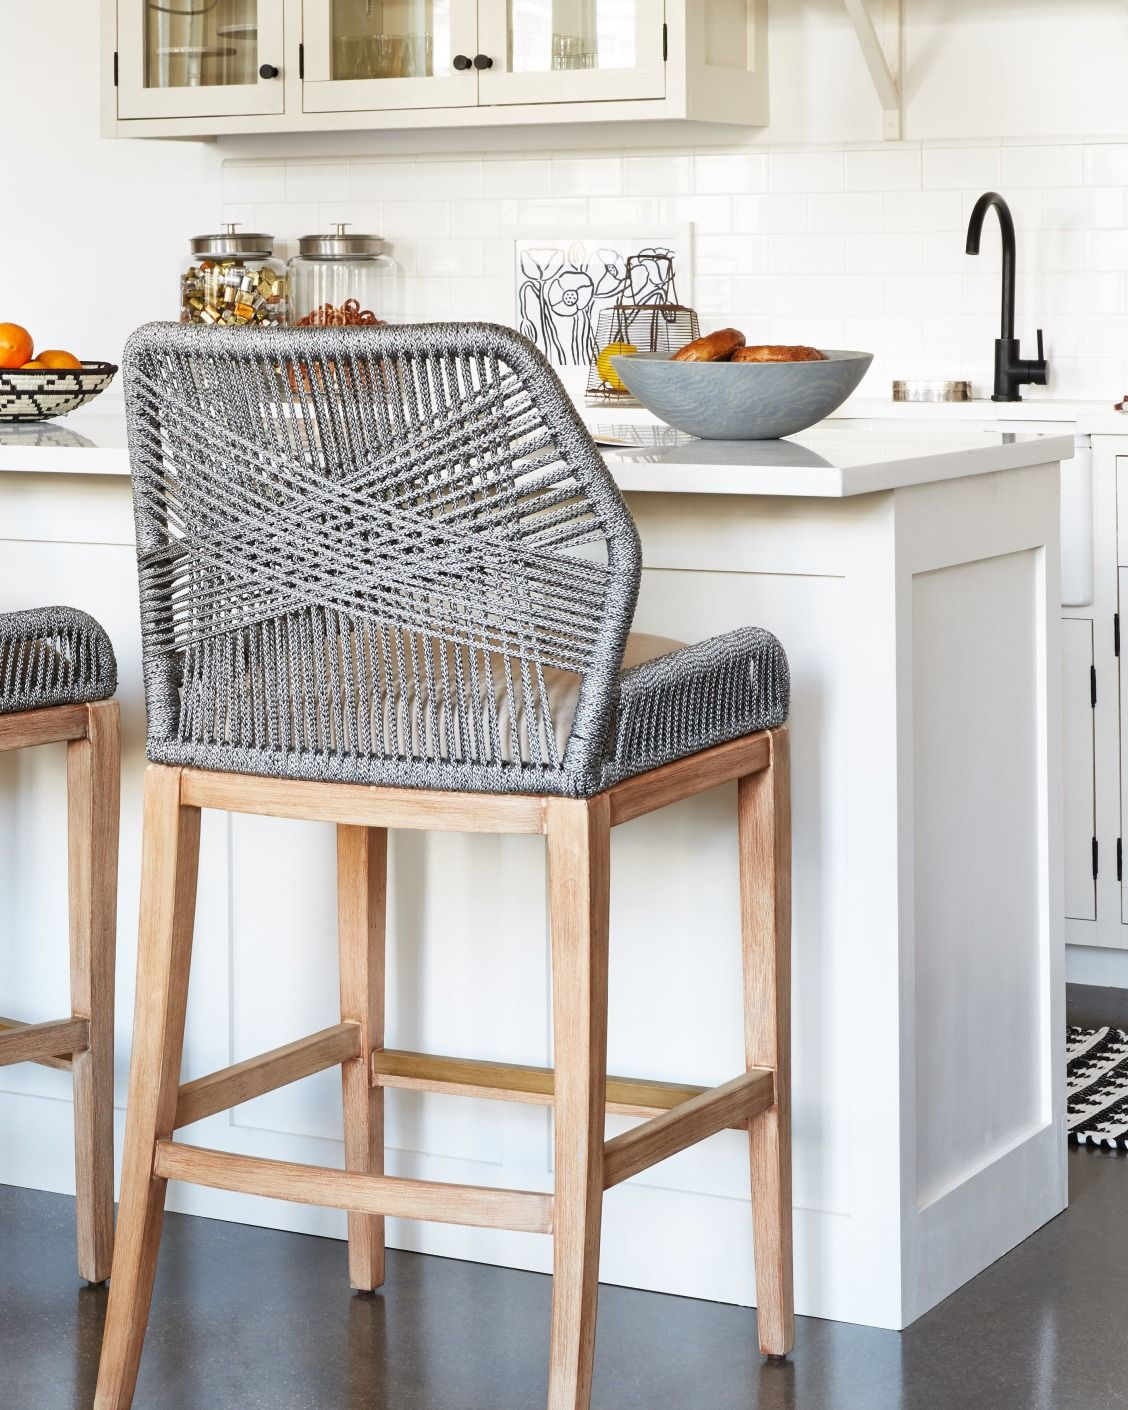 these woven rope counter stools are such a fun unexpected kitchen these woven rope counter stools are such a fun unexpected kitchen accent